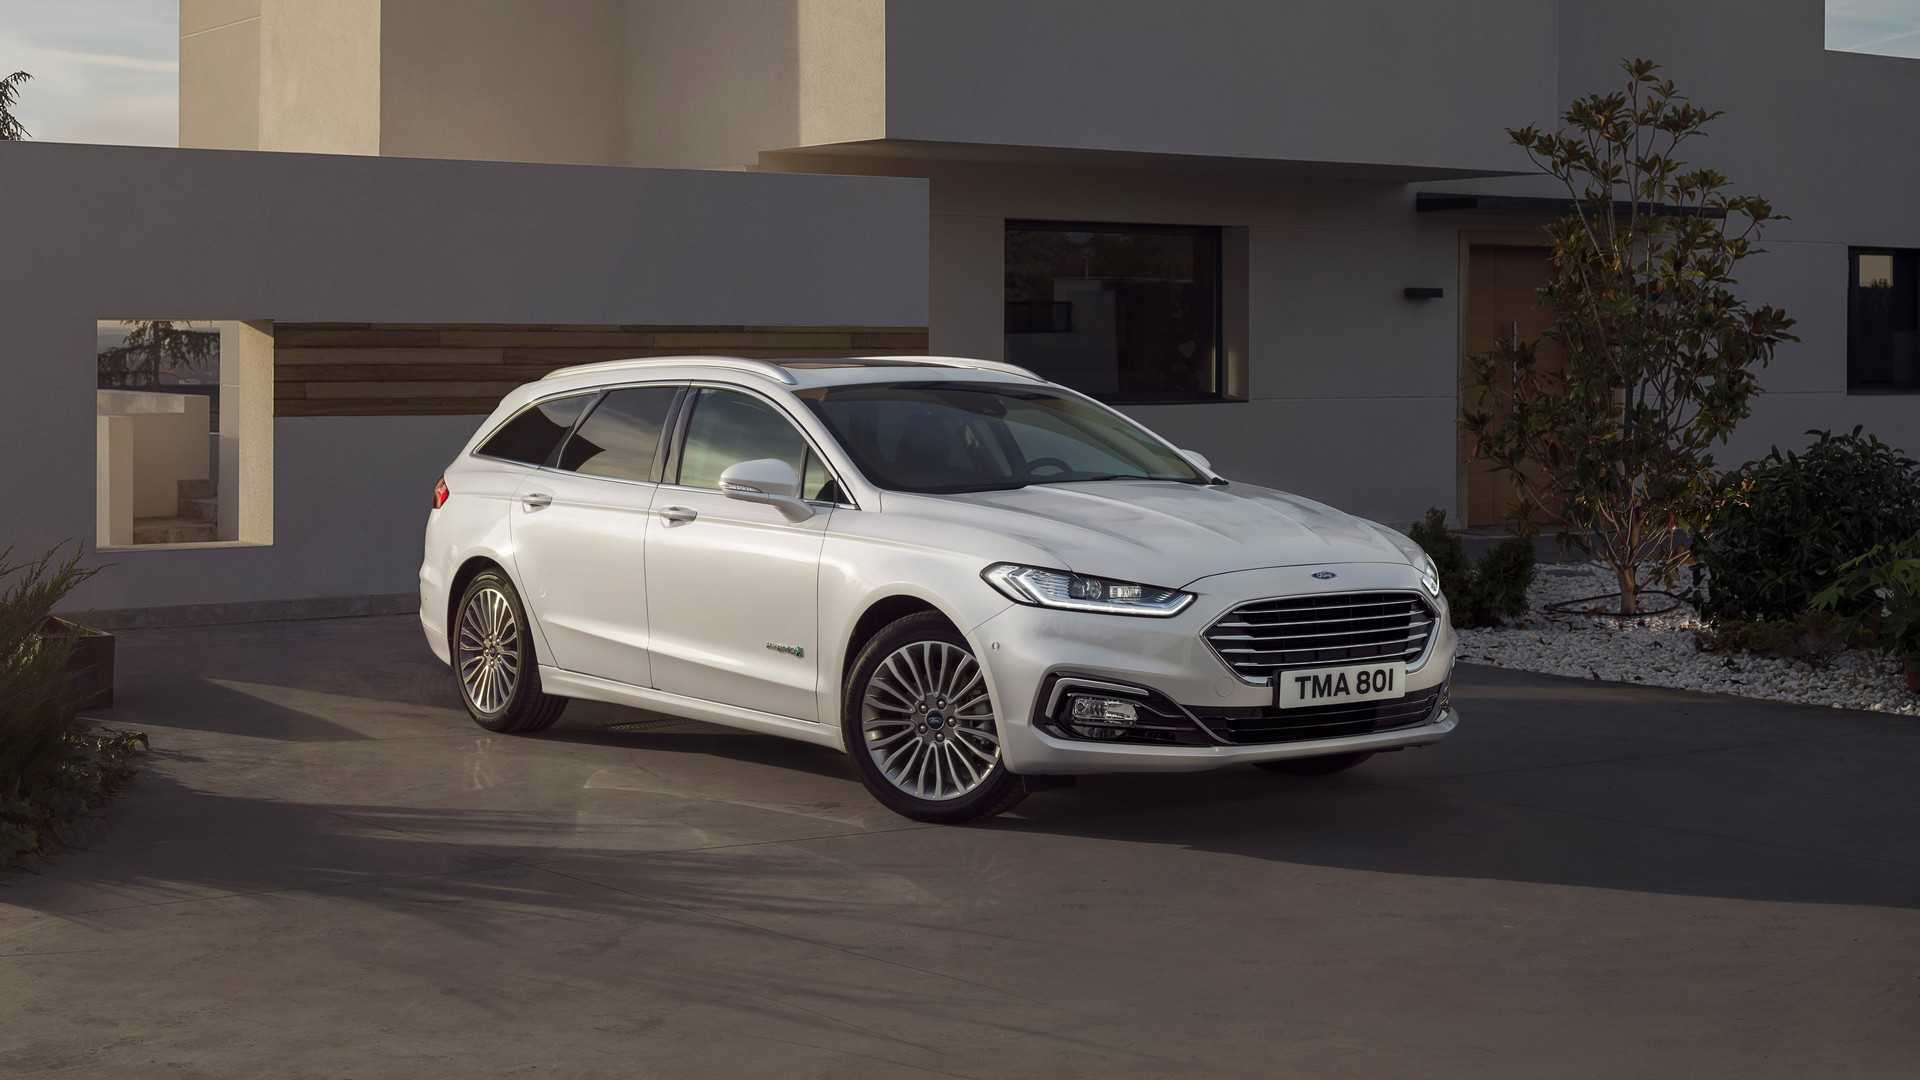 2021 Ford Mondeo Exterior and Interior